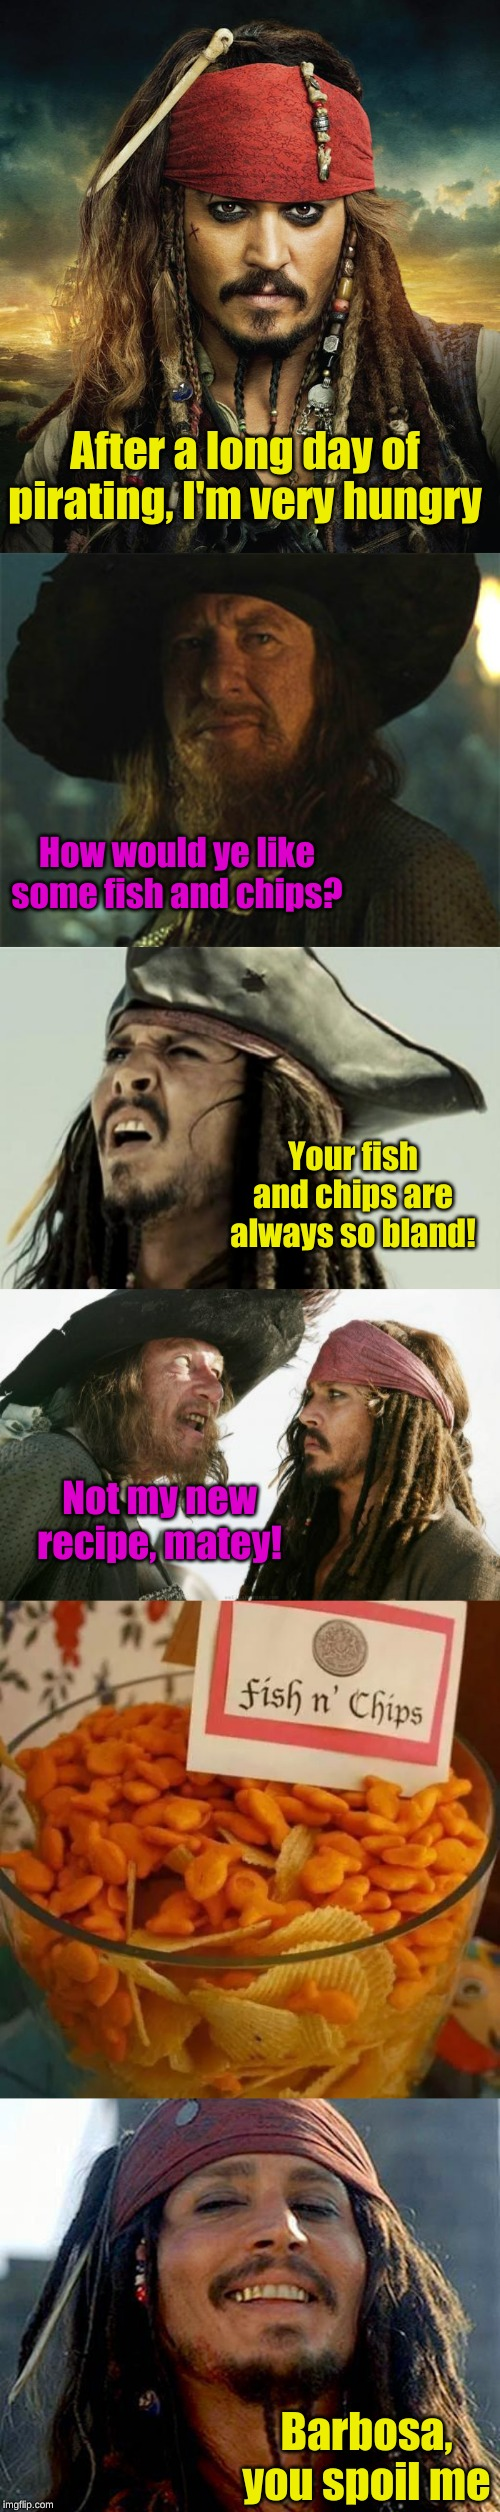 Secret Pirate Recipe: Potato Chips Week, a MemefordandSons Event (June 30 - July 7) | After a long day of pirating, I'm very hungry Barbosa, you spoil me How would ye like some fish and chips? Your fish and chips are always so | image tagged in memes,barbosa and sparrow,confused dafuq jack sparrow what,captain jack sparrow hi-res,pirates of the caribbean barbosa,potato c | made w/ Imgflip meme maker